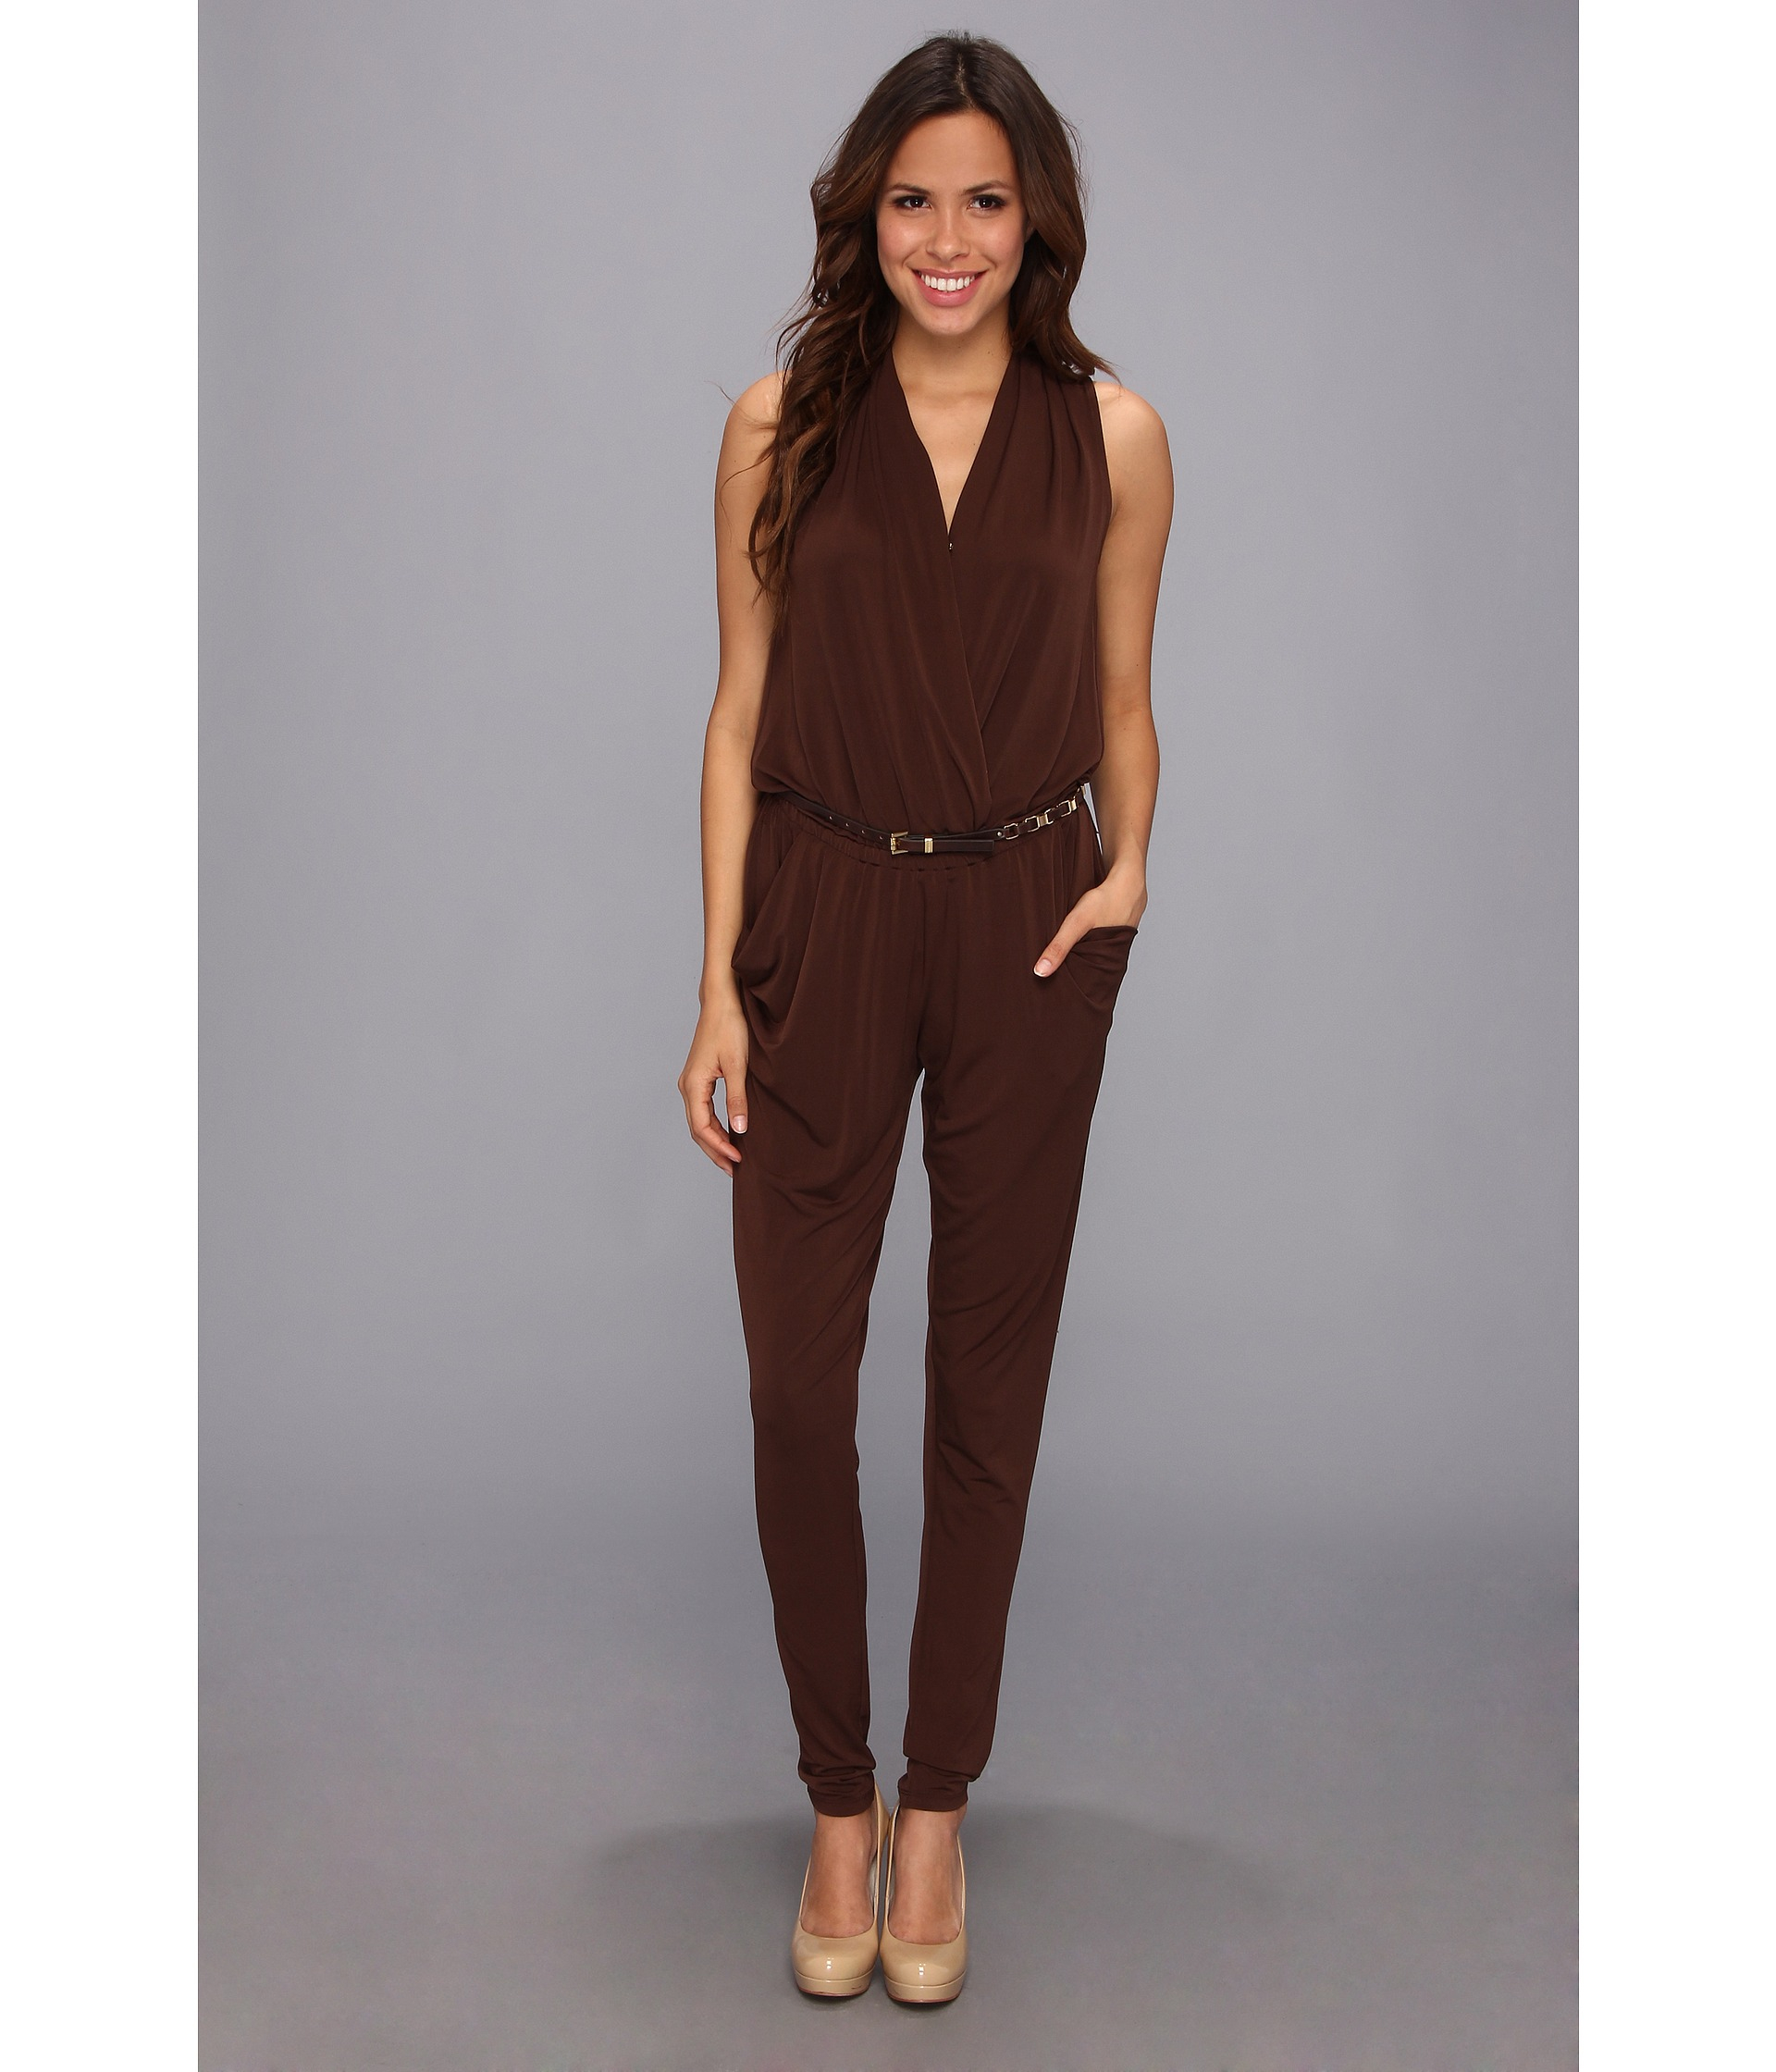 947fef1d605 Lyst - MICHAEL Michael Kors Sleeveless Belted Jumpsuit in Brown